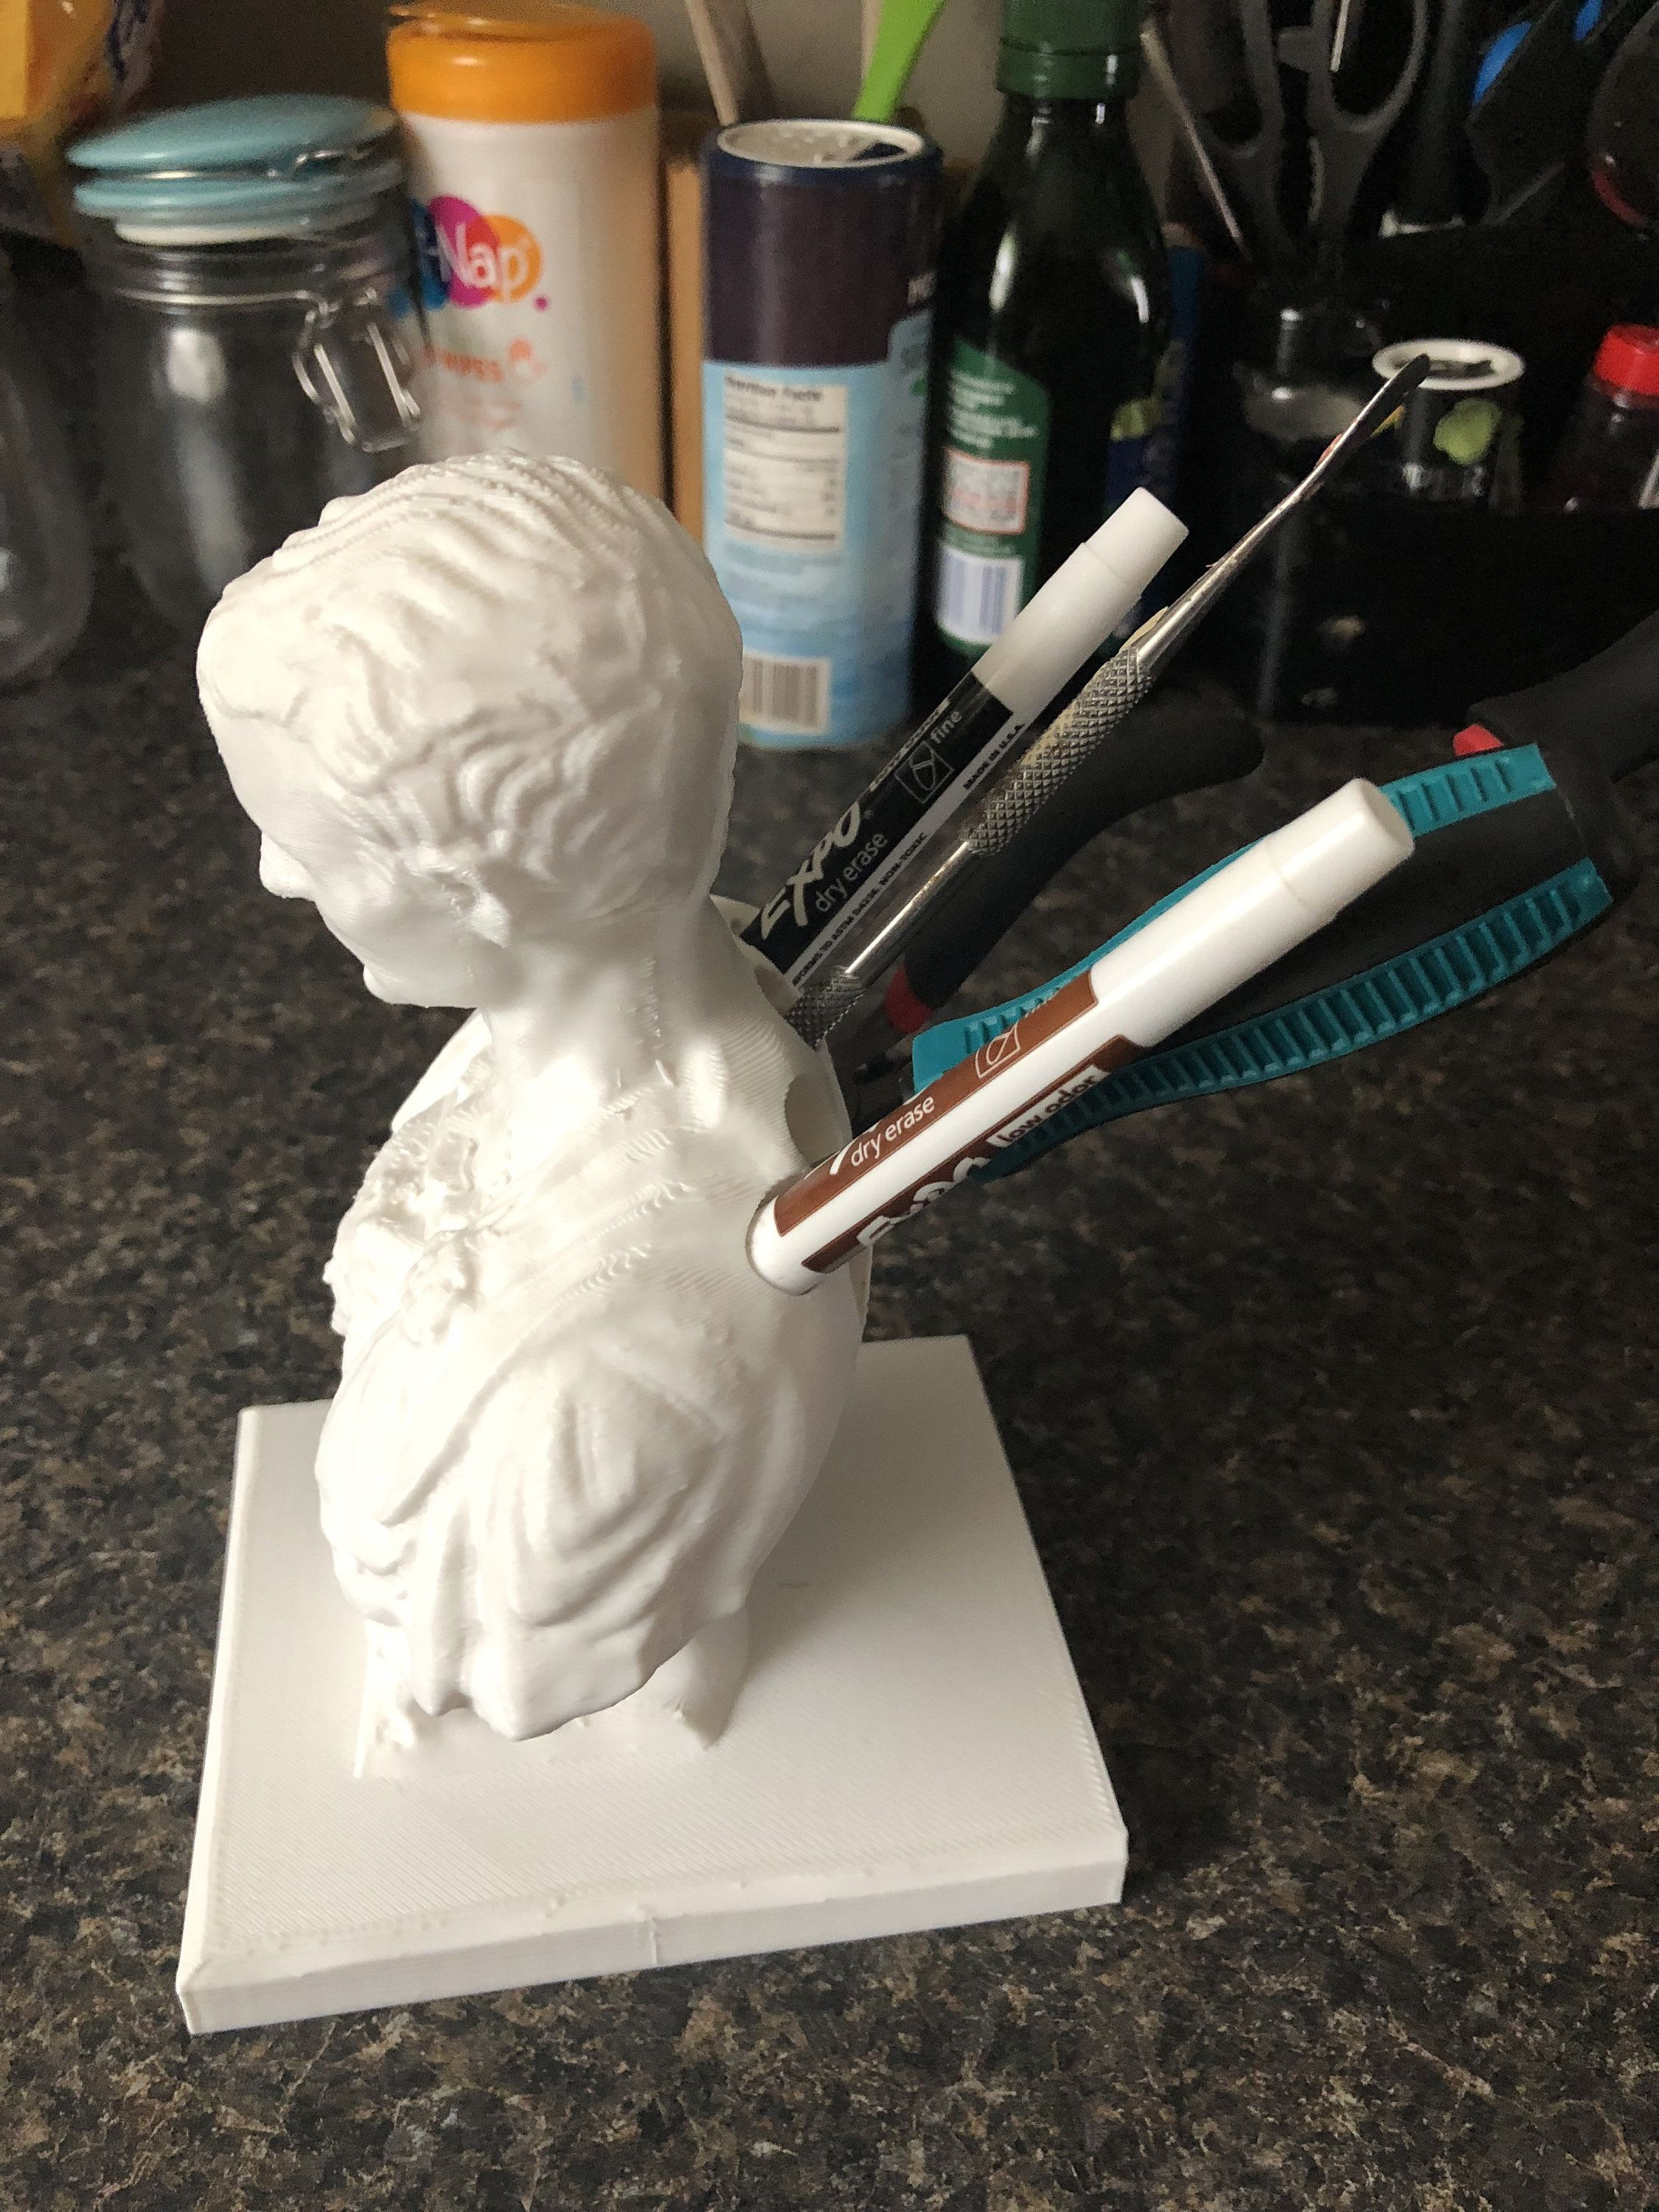 Julius Caesar Pencil Holder Beauteous Julius Caesar Pencil Holder  Pen Holder  Apple Pencil Holder Inspiration